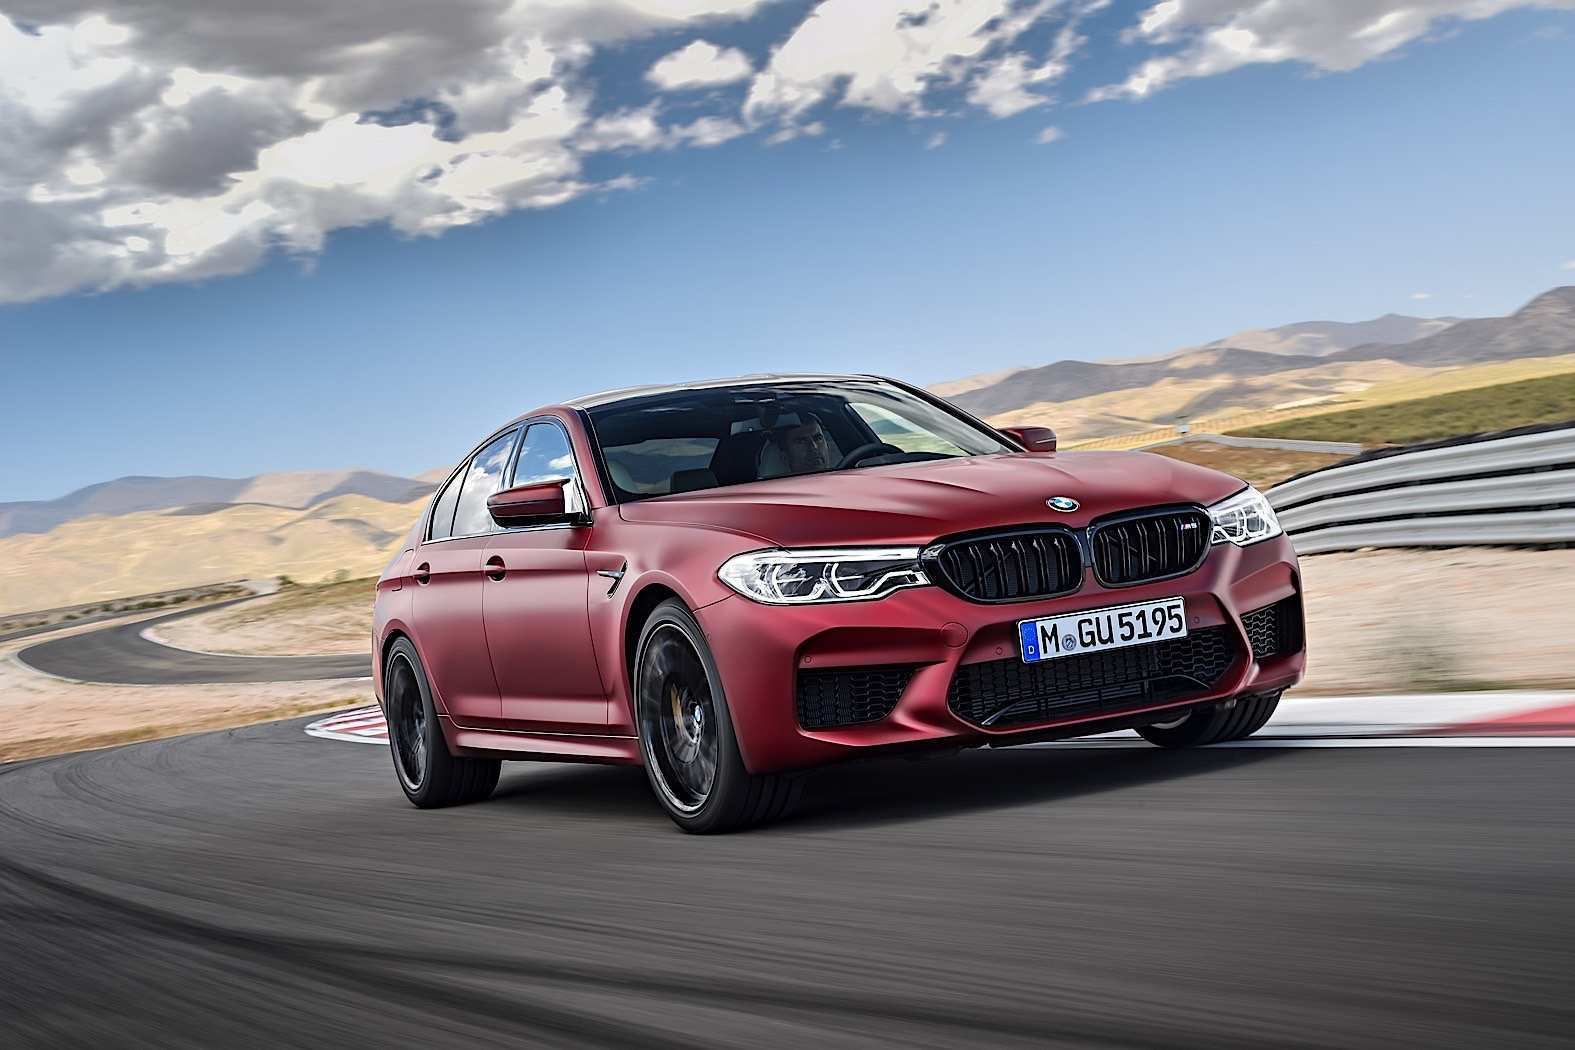 94 New 2020 BMW M5 Xdrive Awd Performance